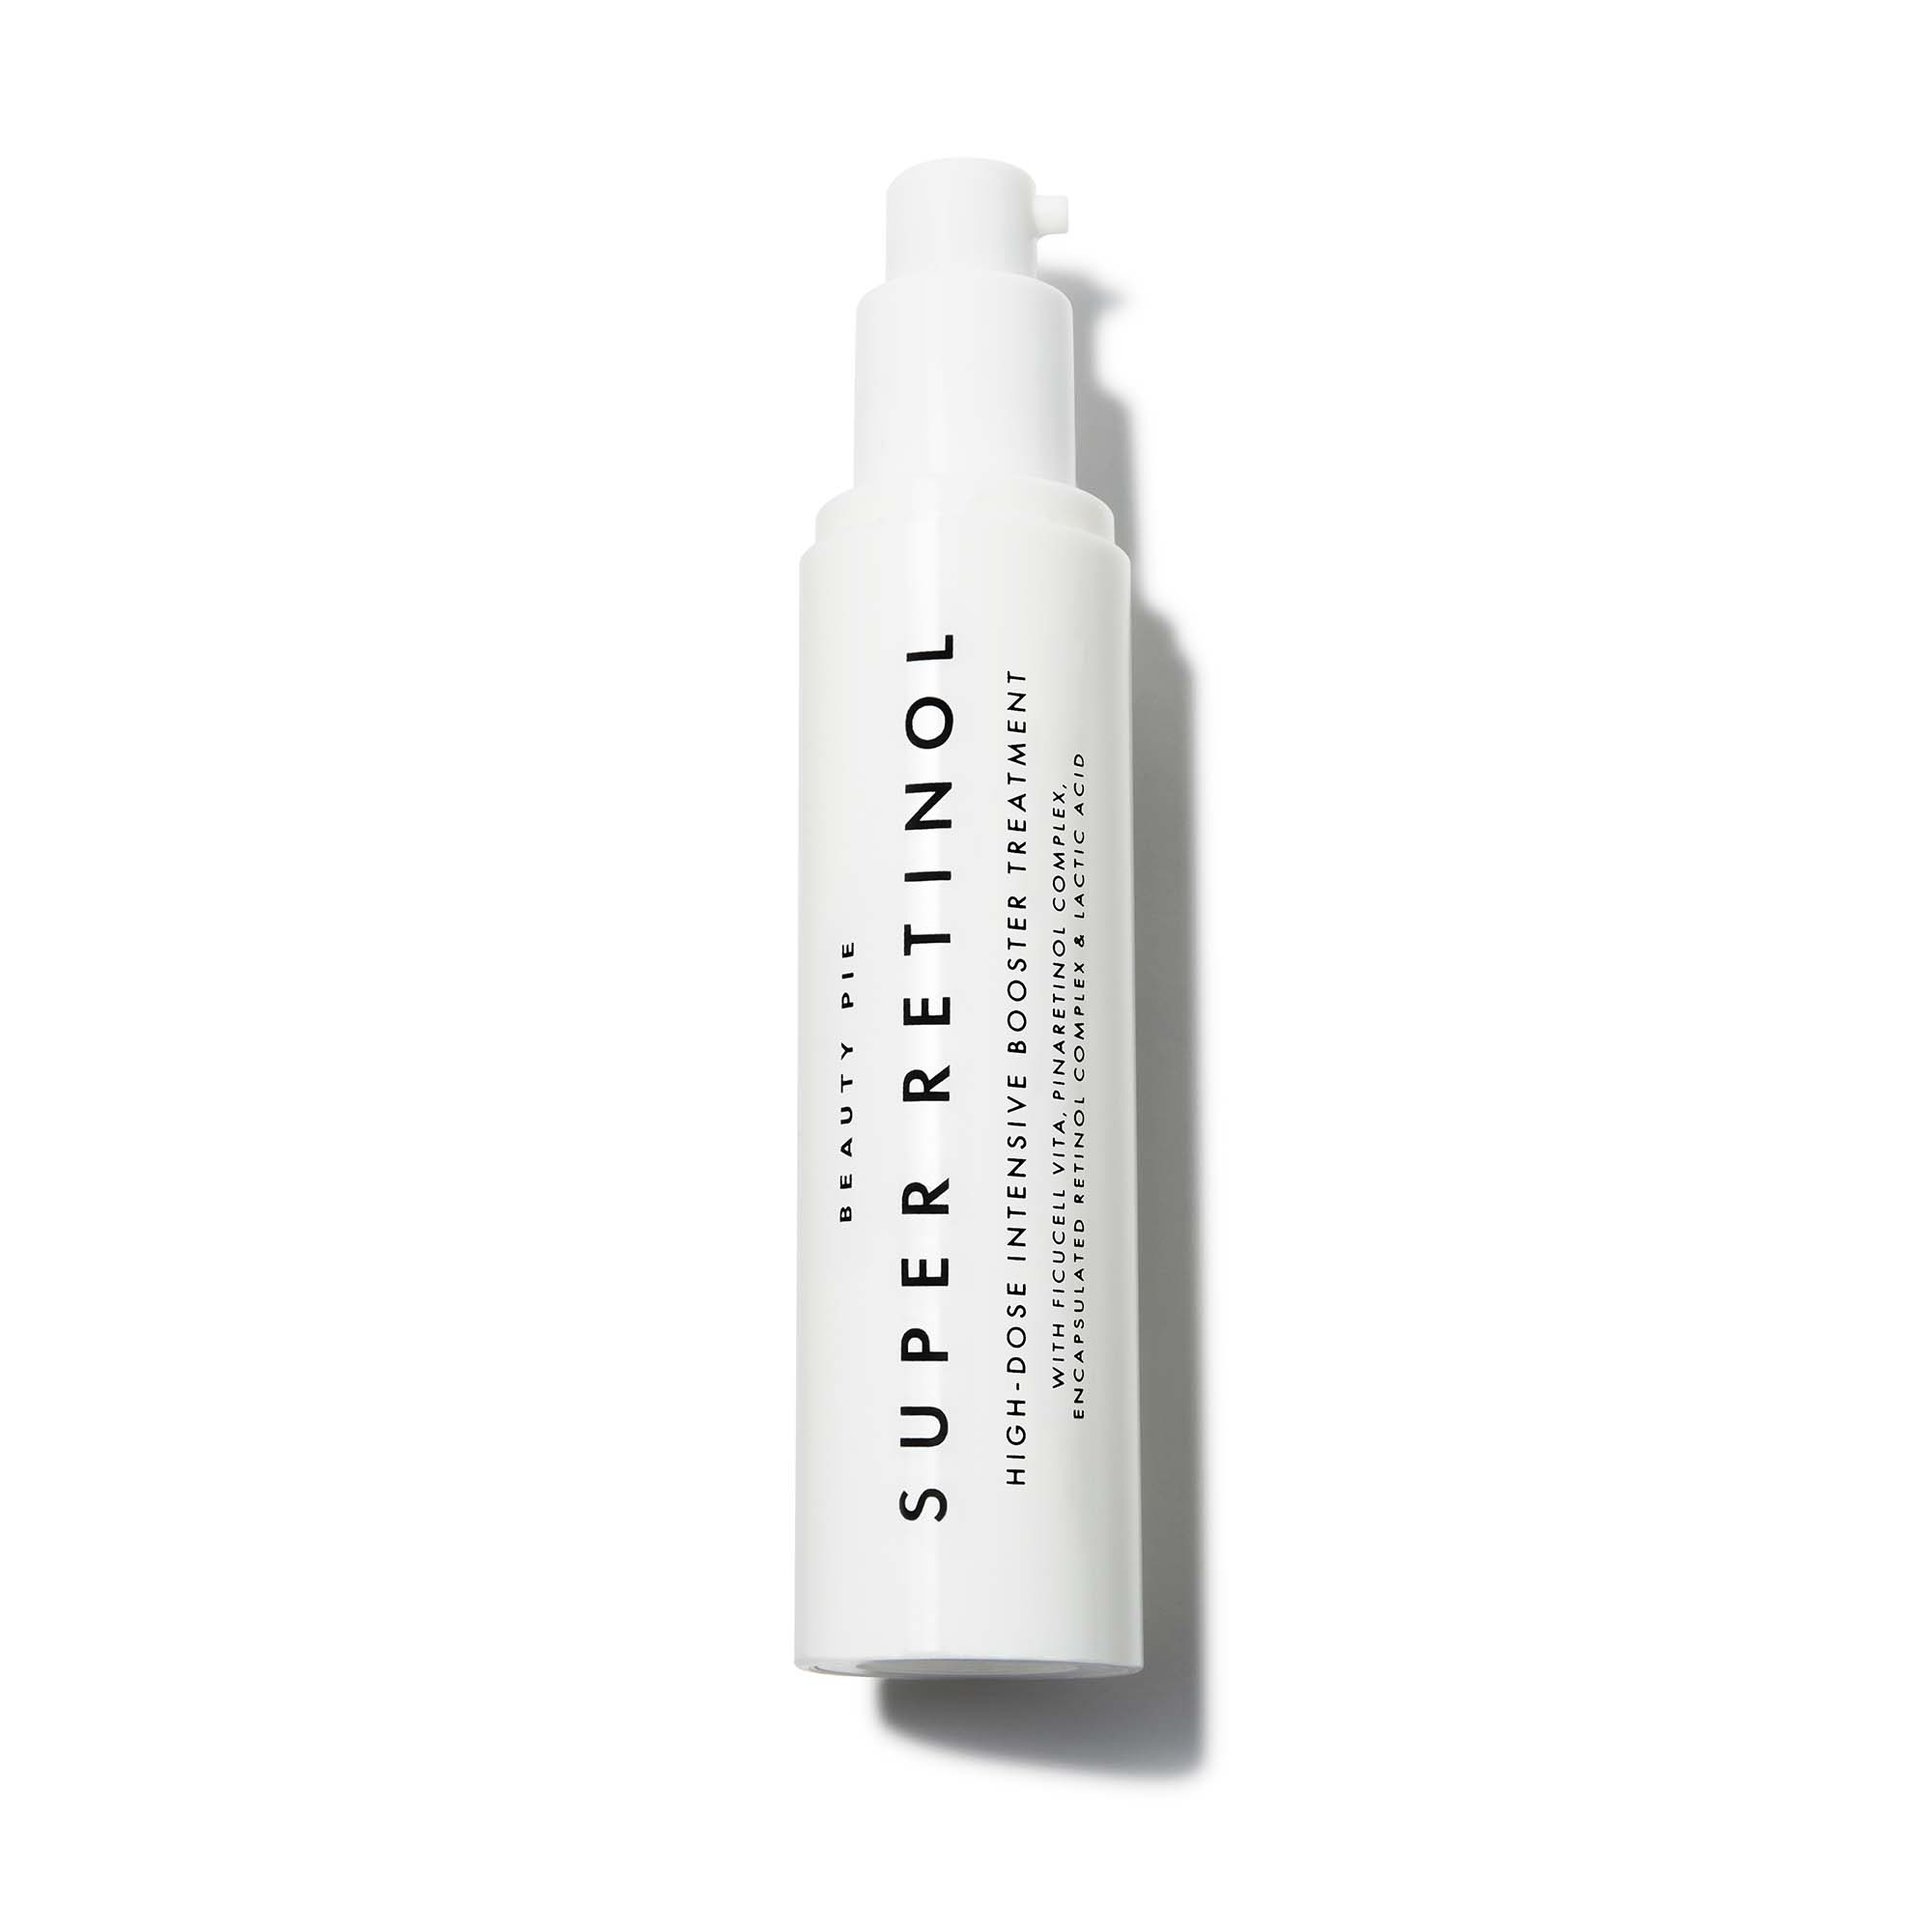 Super Retinol High Dose Booster Treatment by Beauty Pie US